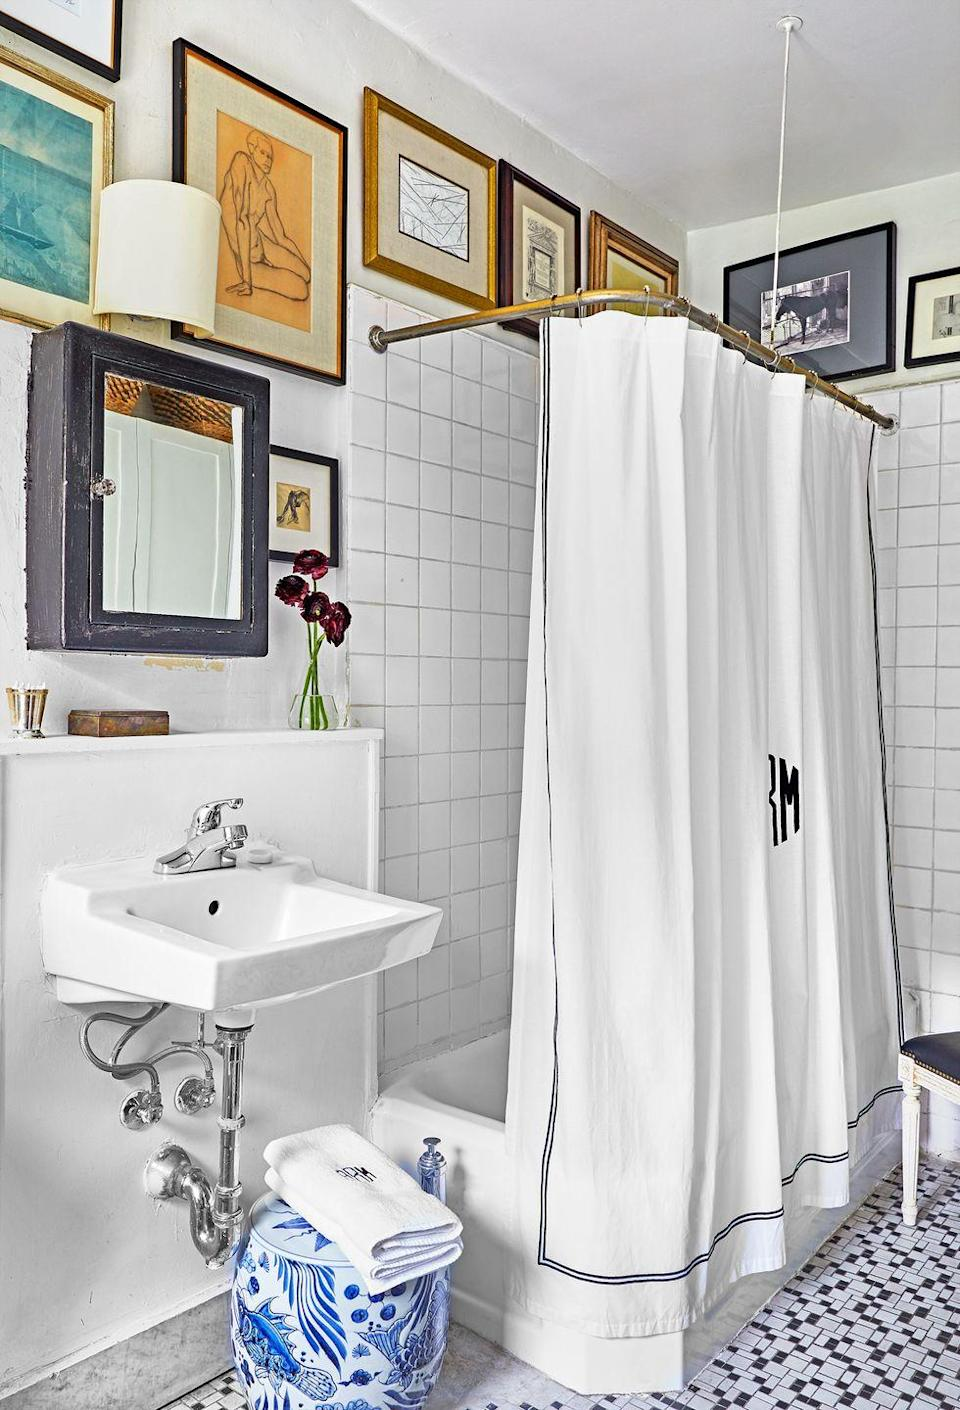 <p>Sure, it might not be the first thing that comes to mind when you think bathroom decor, but what else are you going to do with that otherwise-unused space above your shower? Designer Alexander Reid shows how it adds some much-needed texture to an all-white bathroom (P.S. This is a great design choice for rentals!). </p>